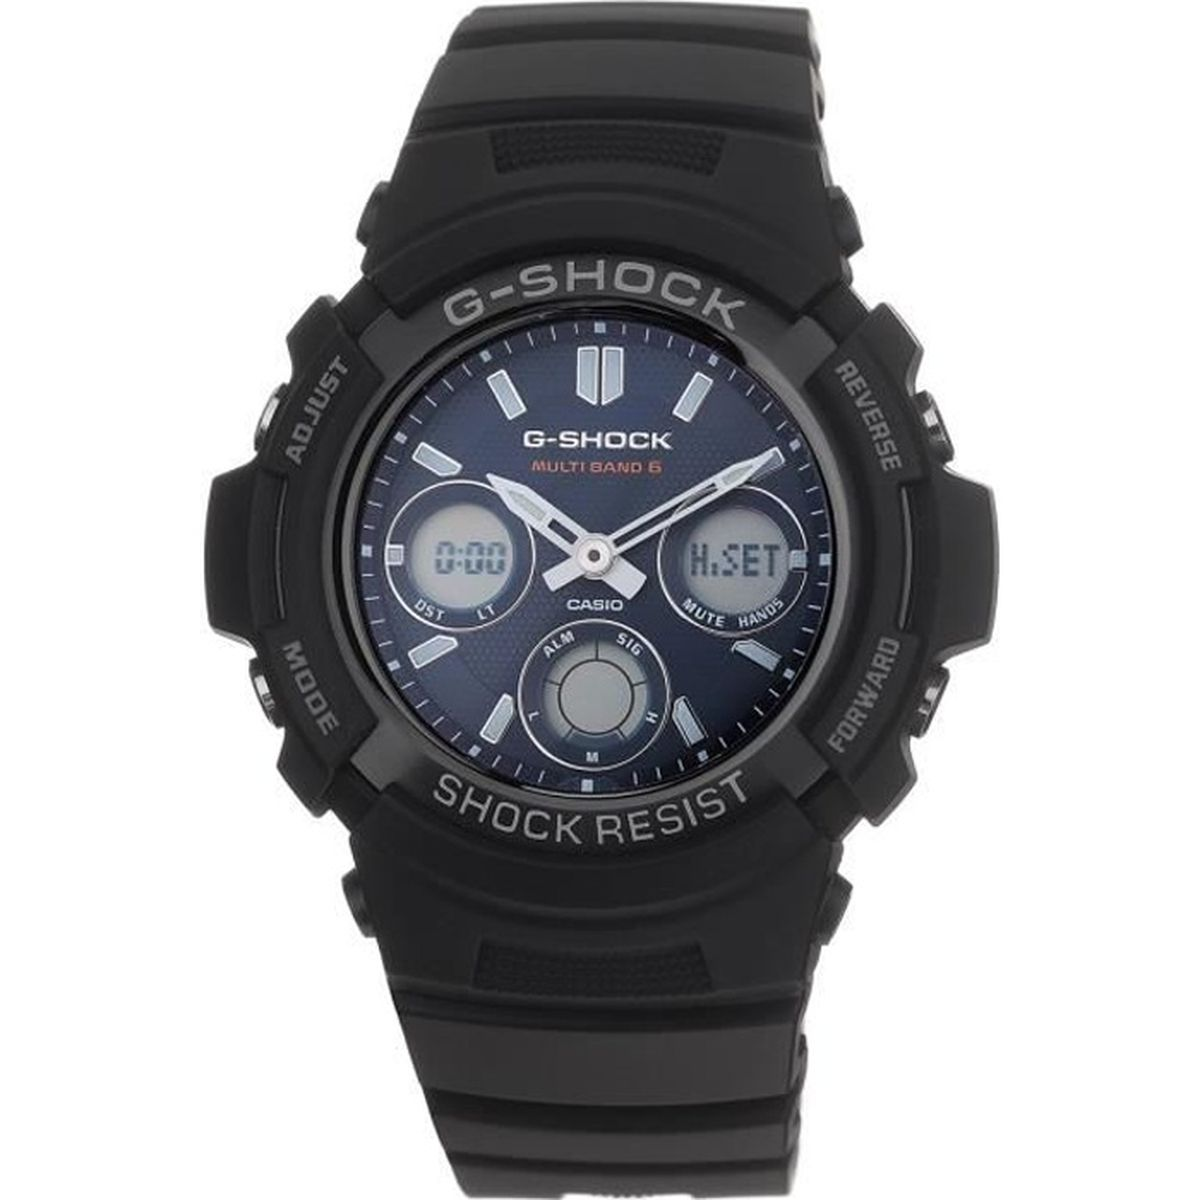 montre casio g shock promo. Black Bedroom Furniture Sets. Home Design Ideas